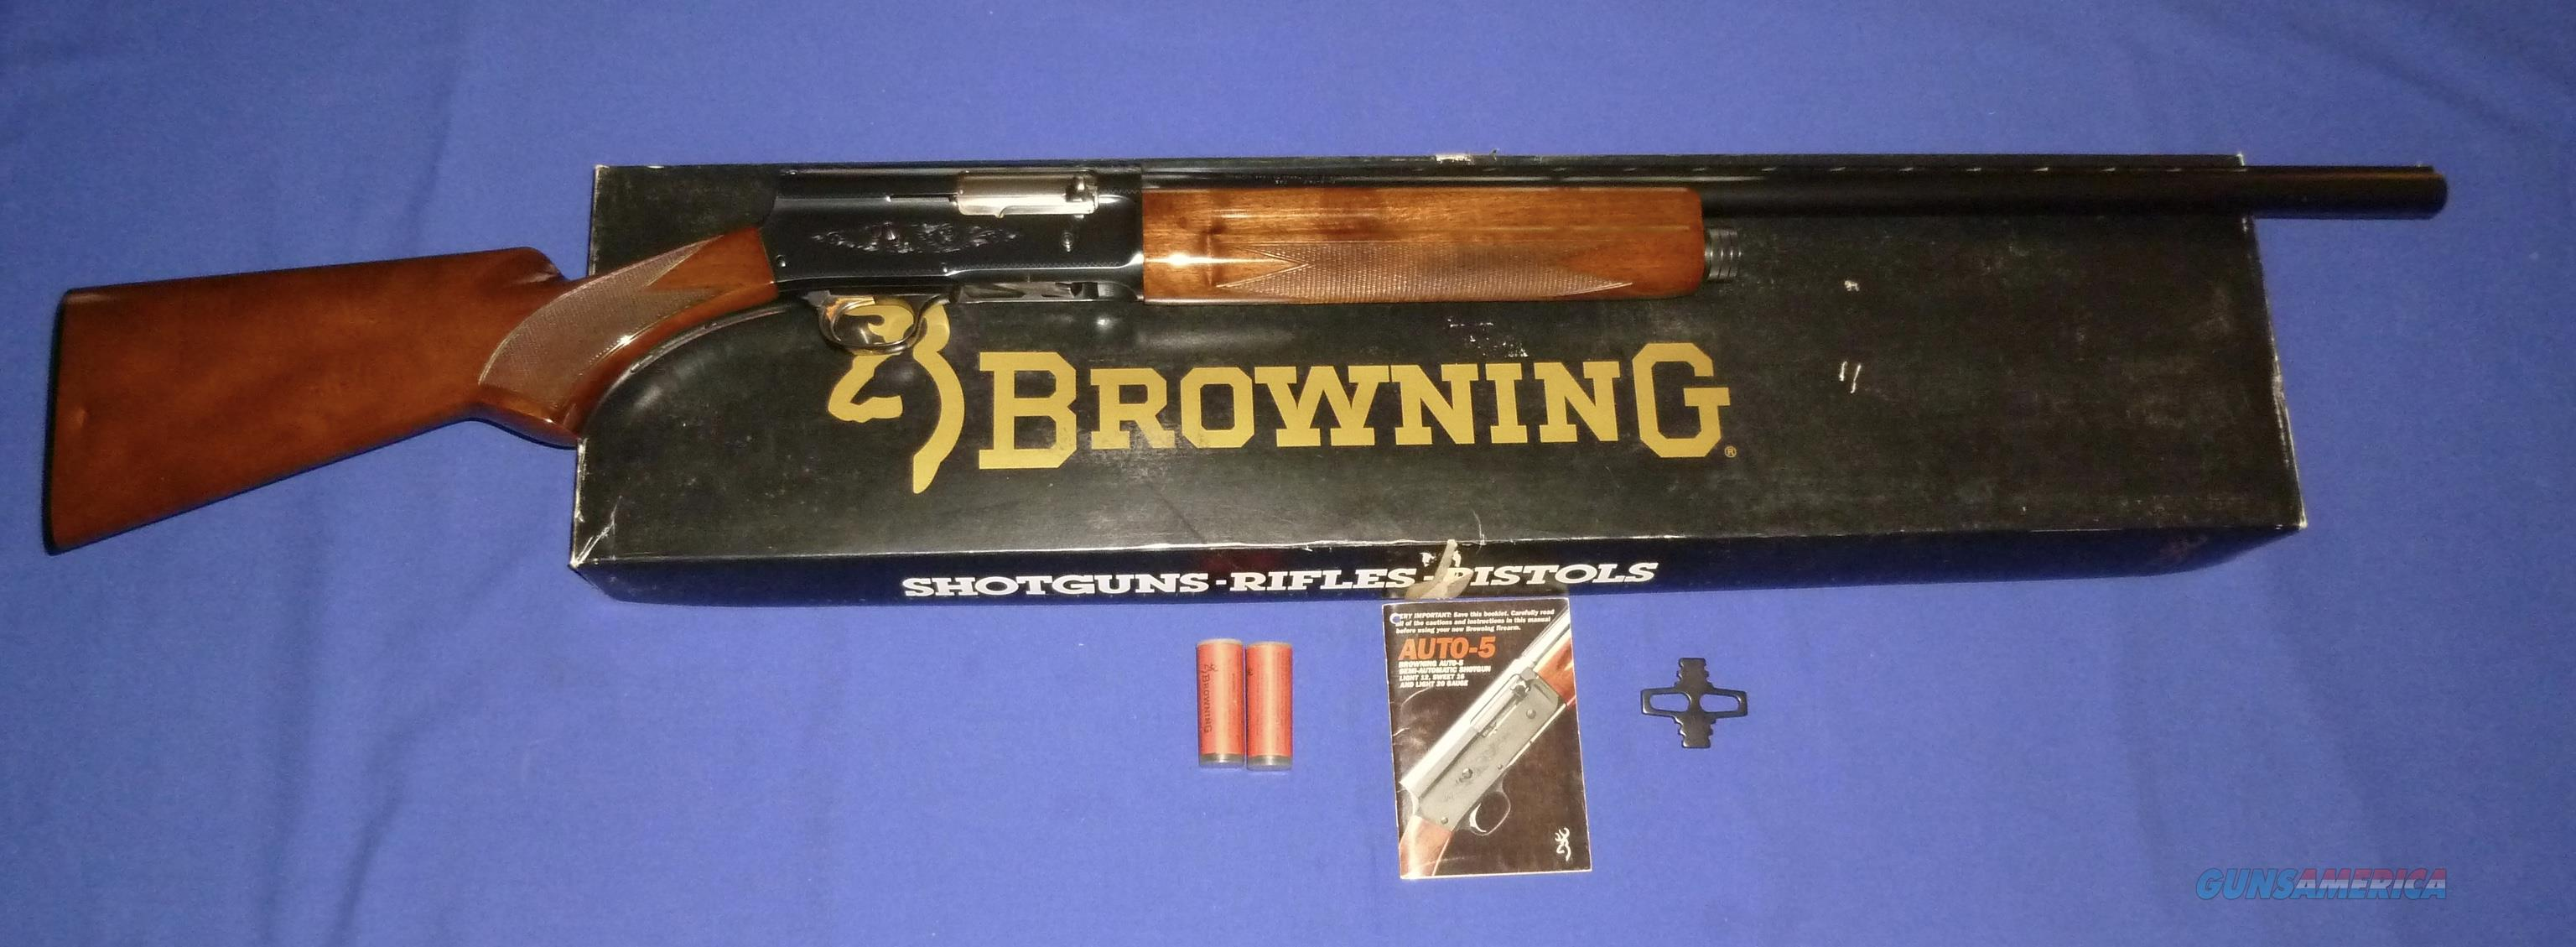 Mossberg 500 Shotgun Disassembly Guide by Mini-Me | The ...